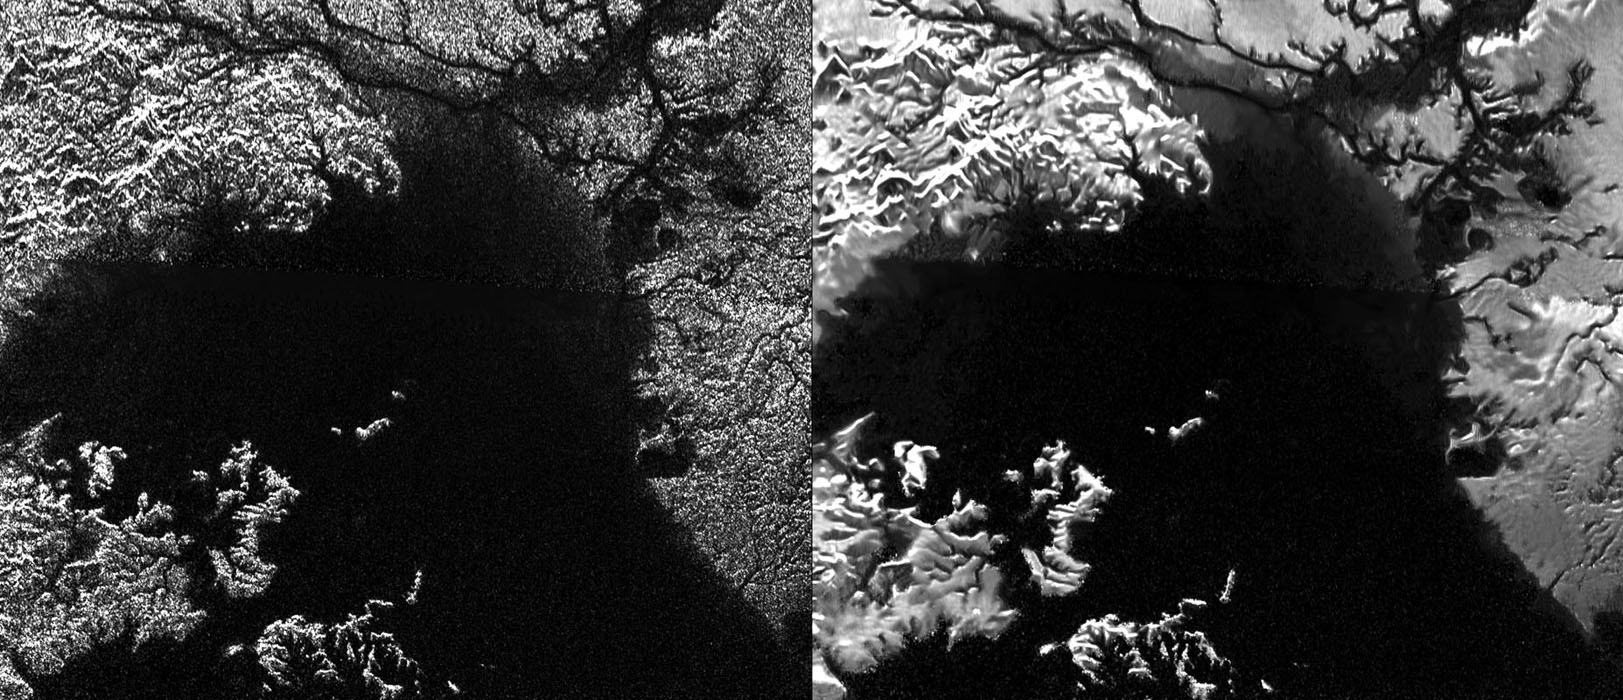 Saturn's moon Titan, seen using a new image processing technique the removes radar noise.